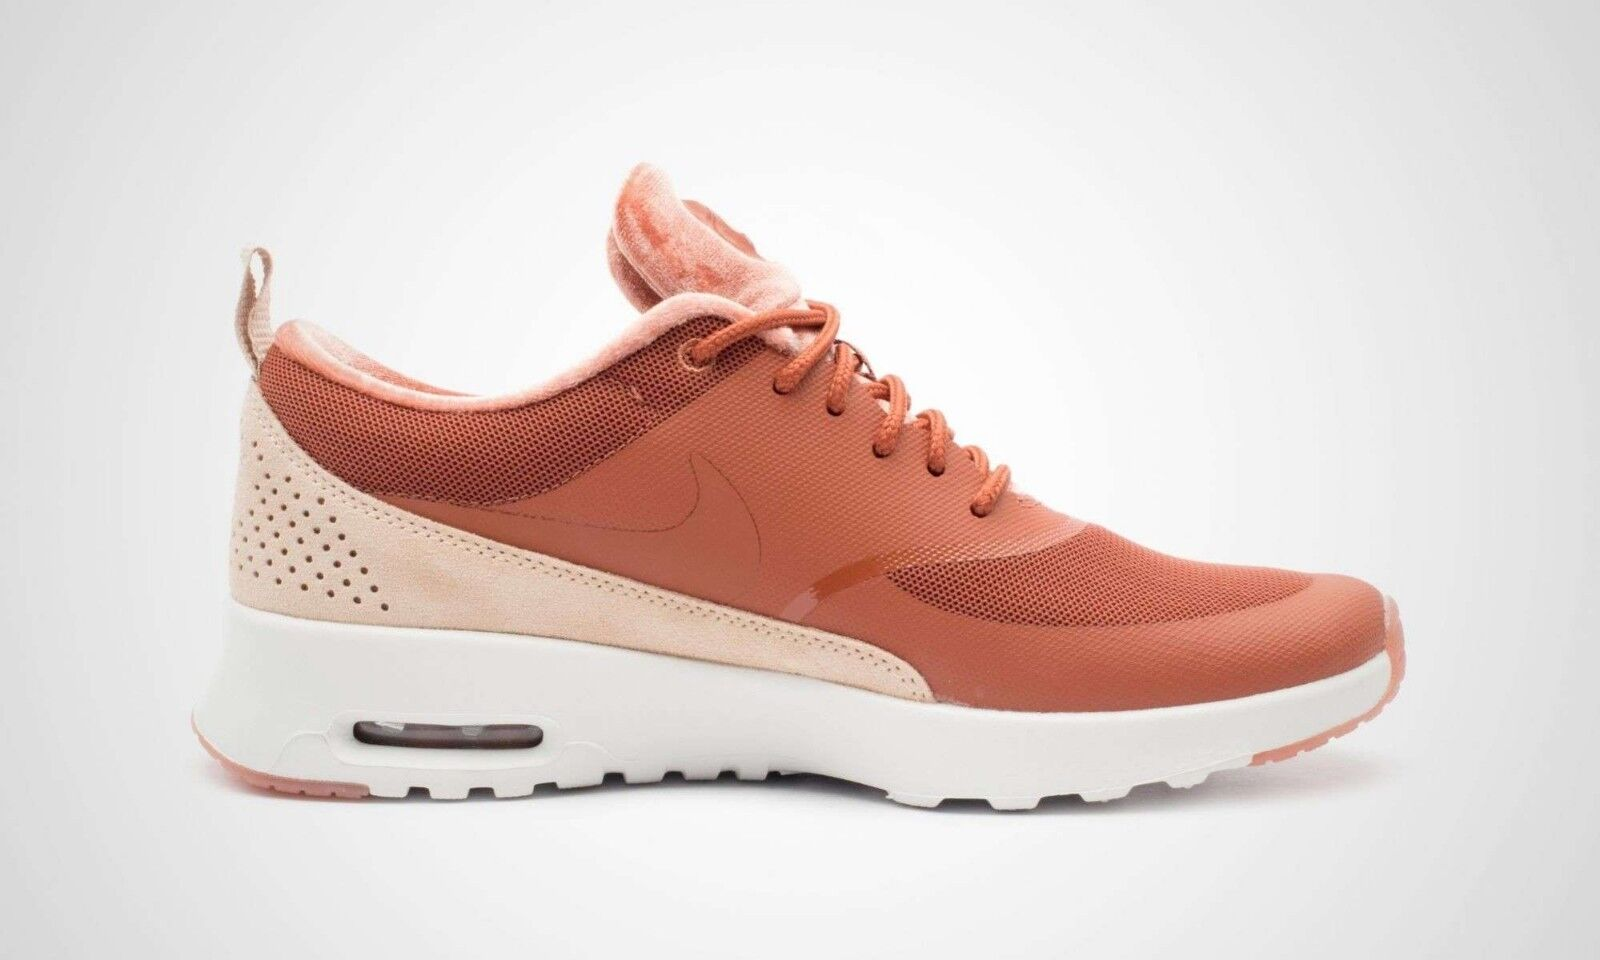 Nike Wmns Air Max Thea LX Dusty Peach Bio Beige 881203-201 Größe 9 UK